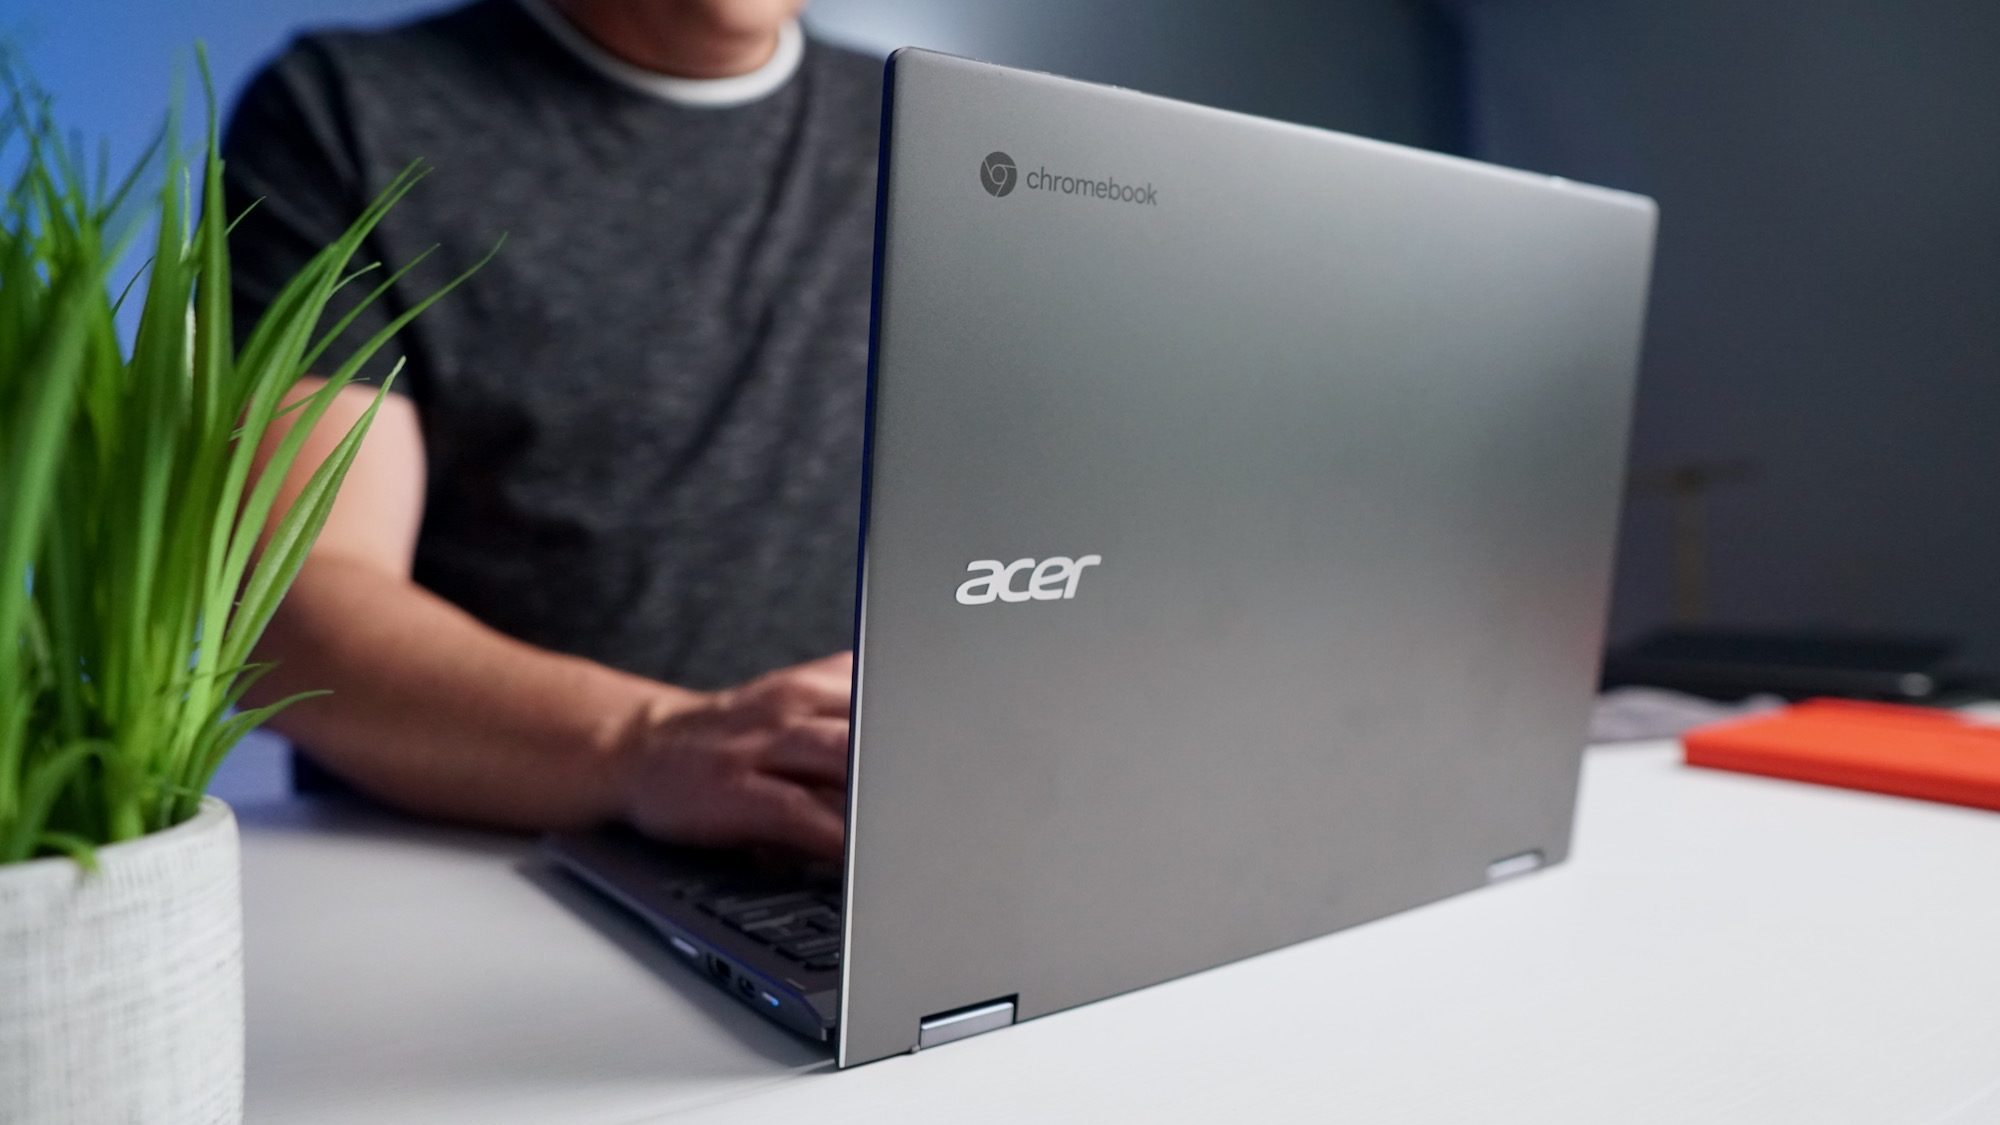 New Acer Chromebook Spin 713 hands-on and first impressions